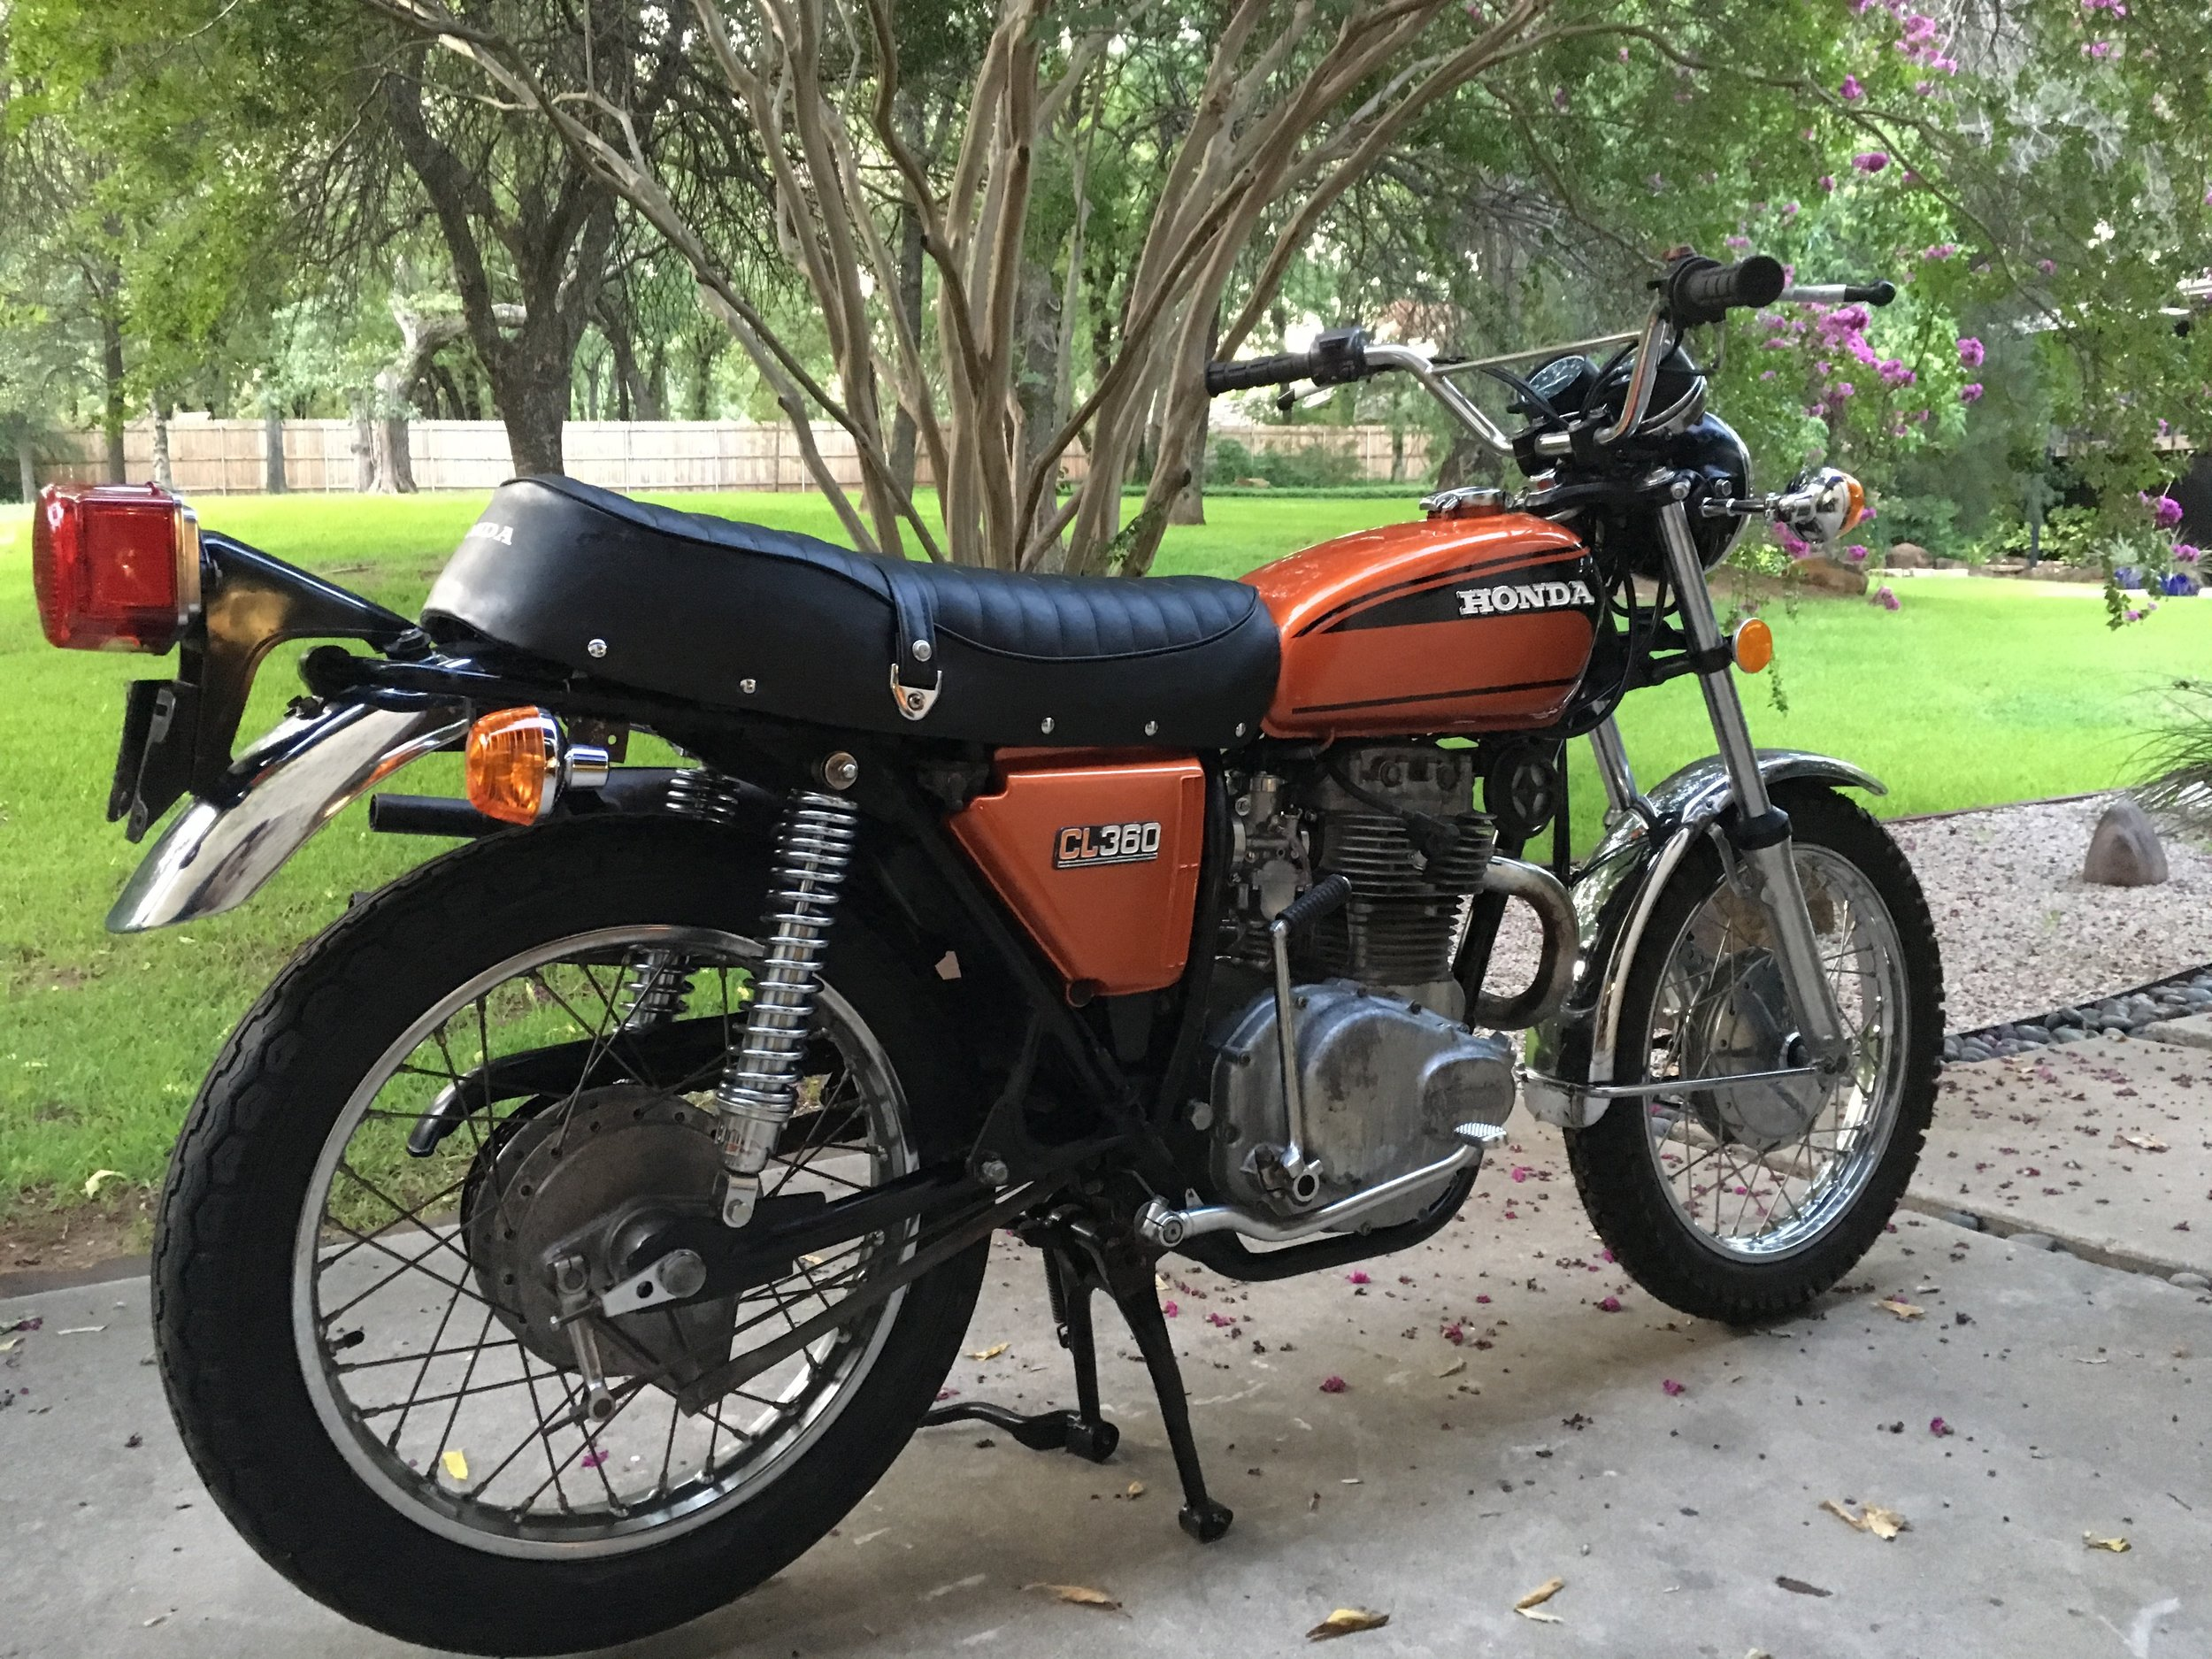 A vintage set of Japanese Redwing shocks replaced the rusted originals. A new seat cover, grab bar, turn signals,  and a taillight lens have the rear-end looking fresh. The bike came without  front or back footpegs. Some replacements are on order.